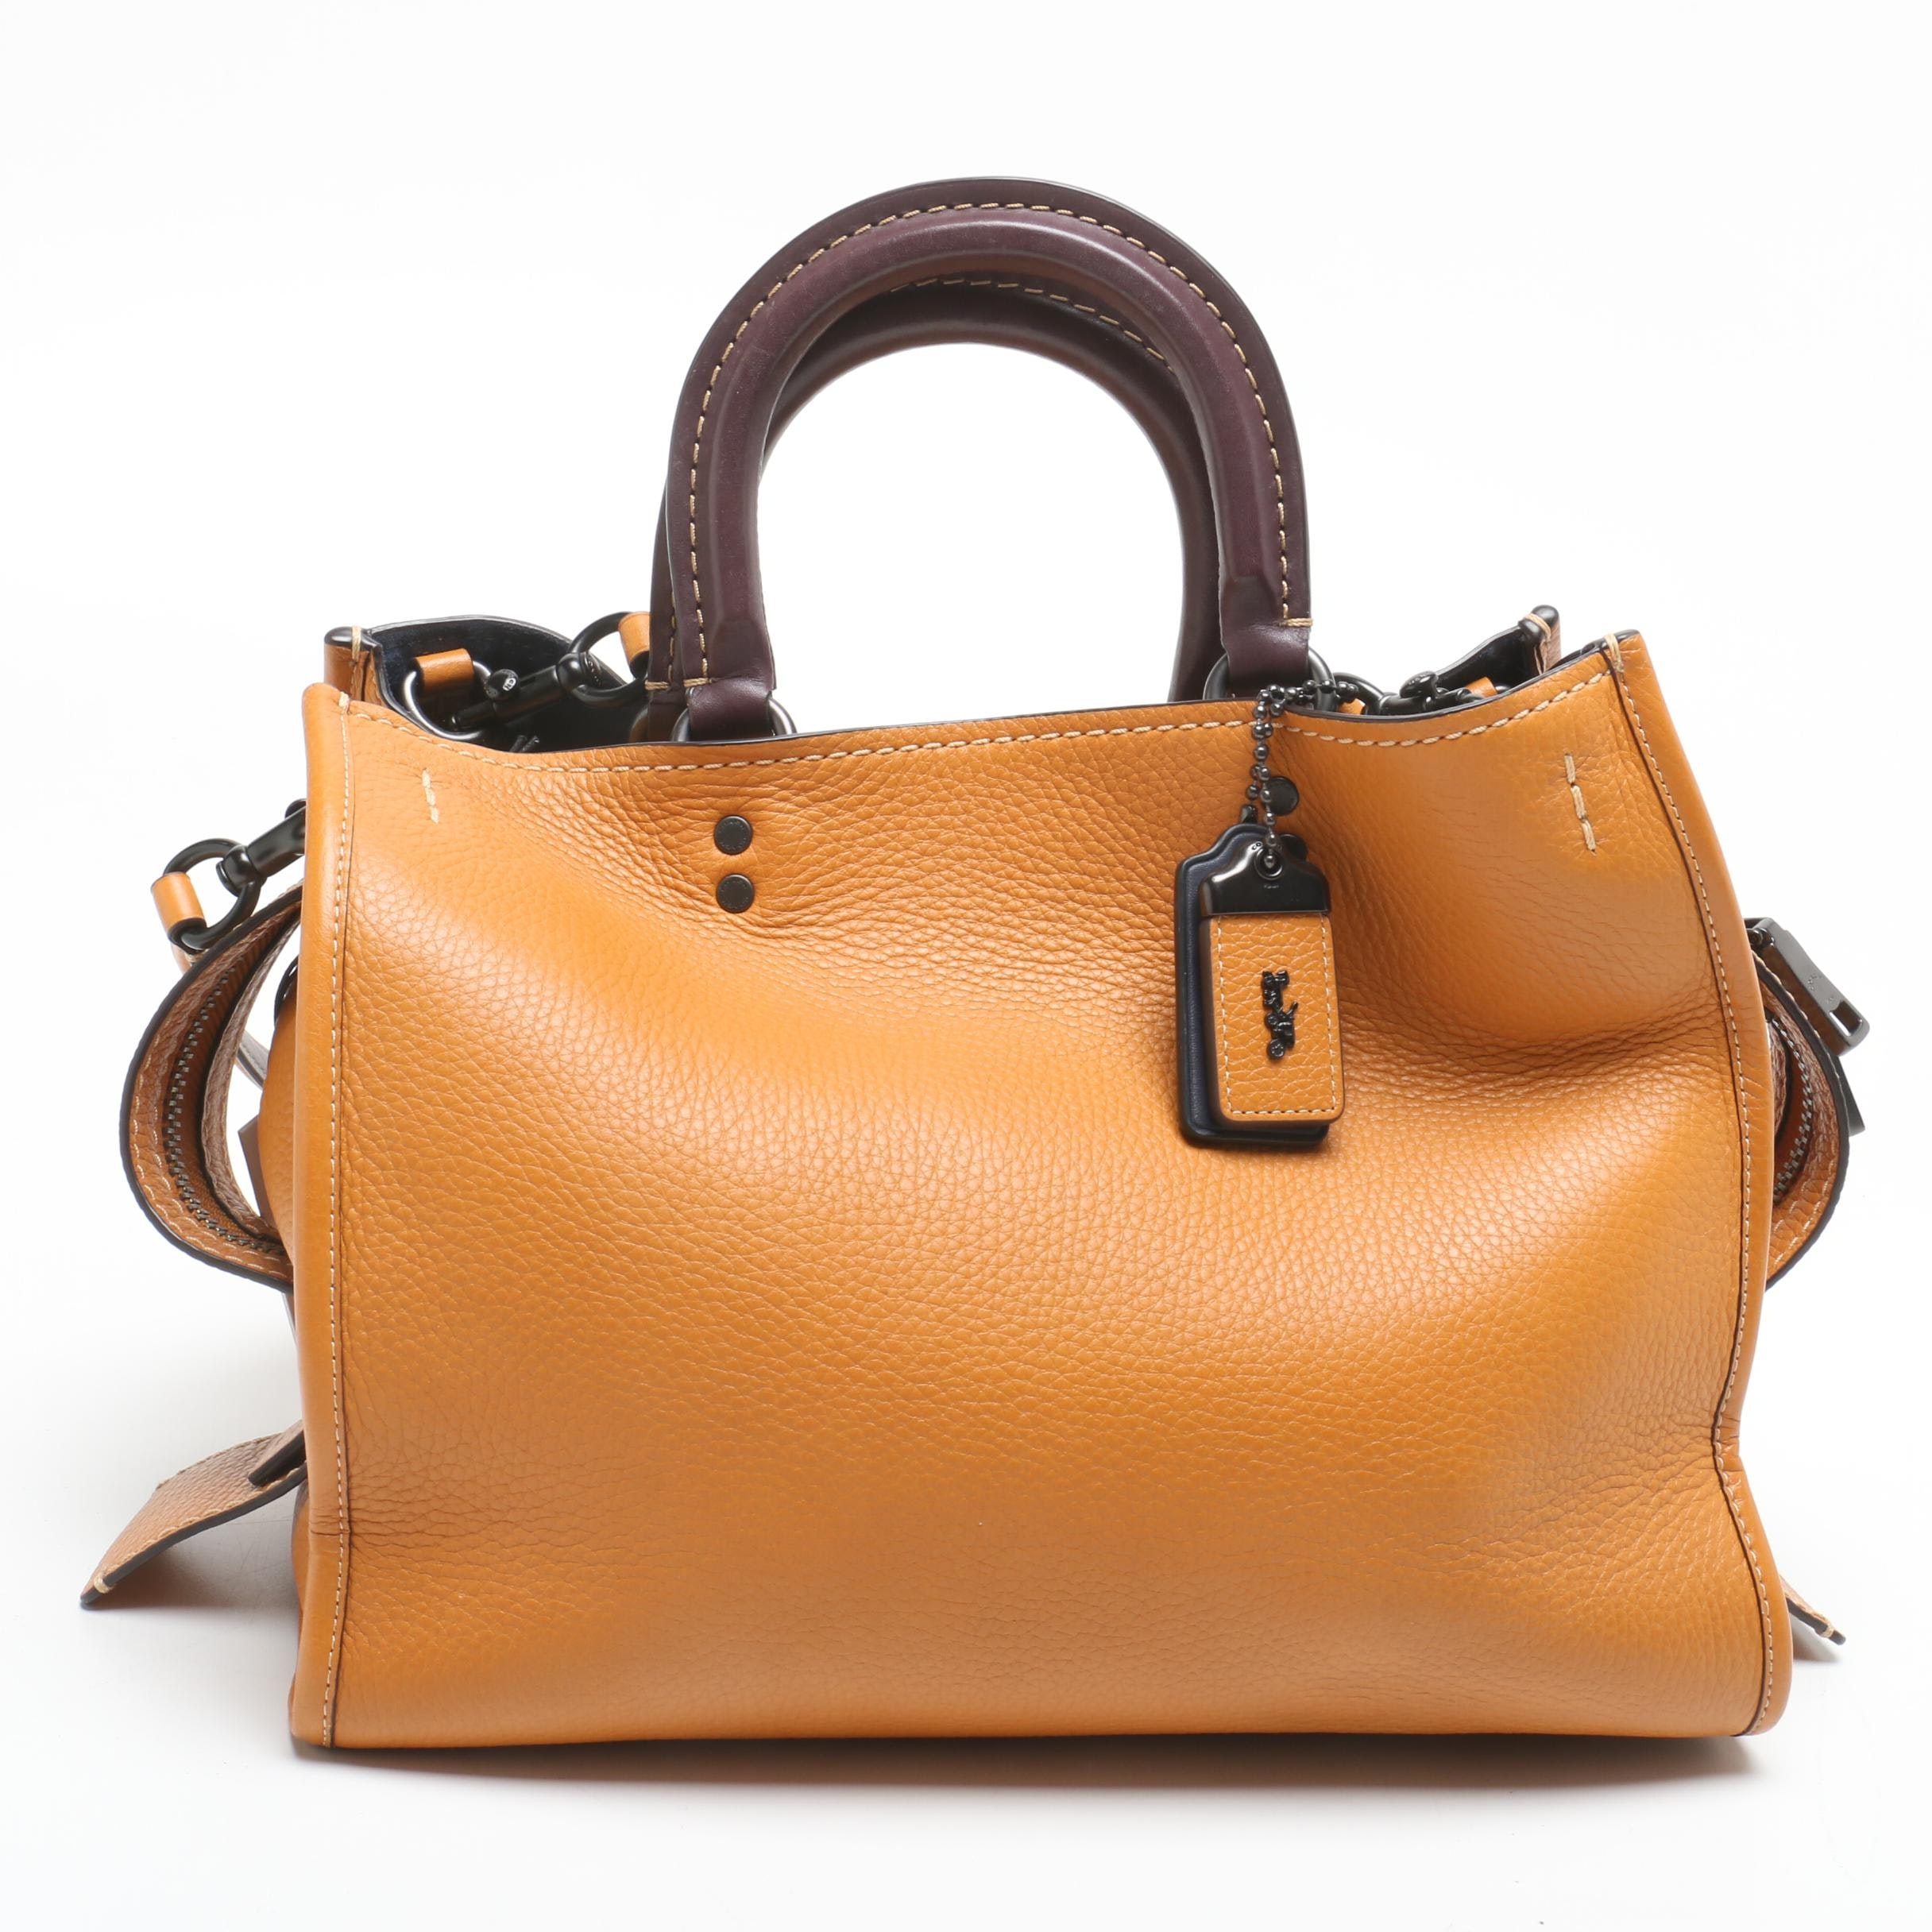 Coach Rogue Butterscotch Pebbled Leather Satchel with Dark Plum Handles